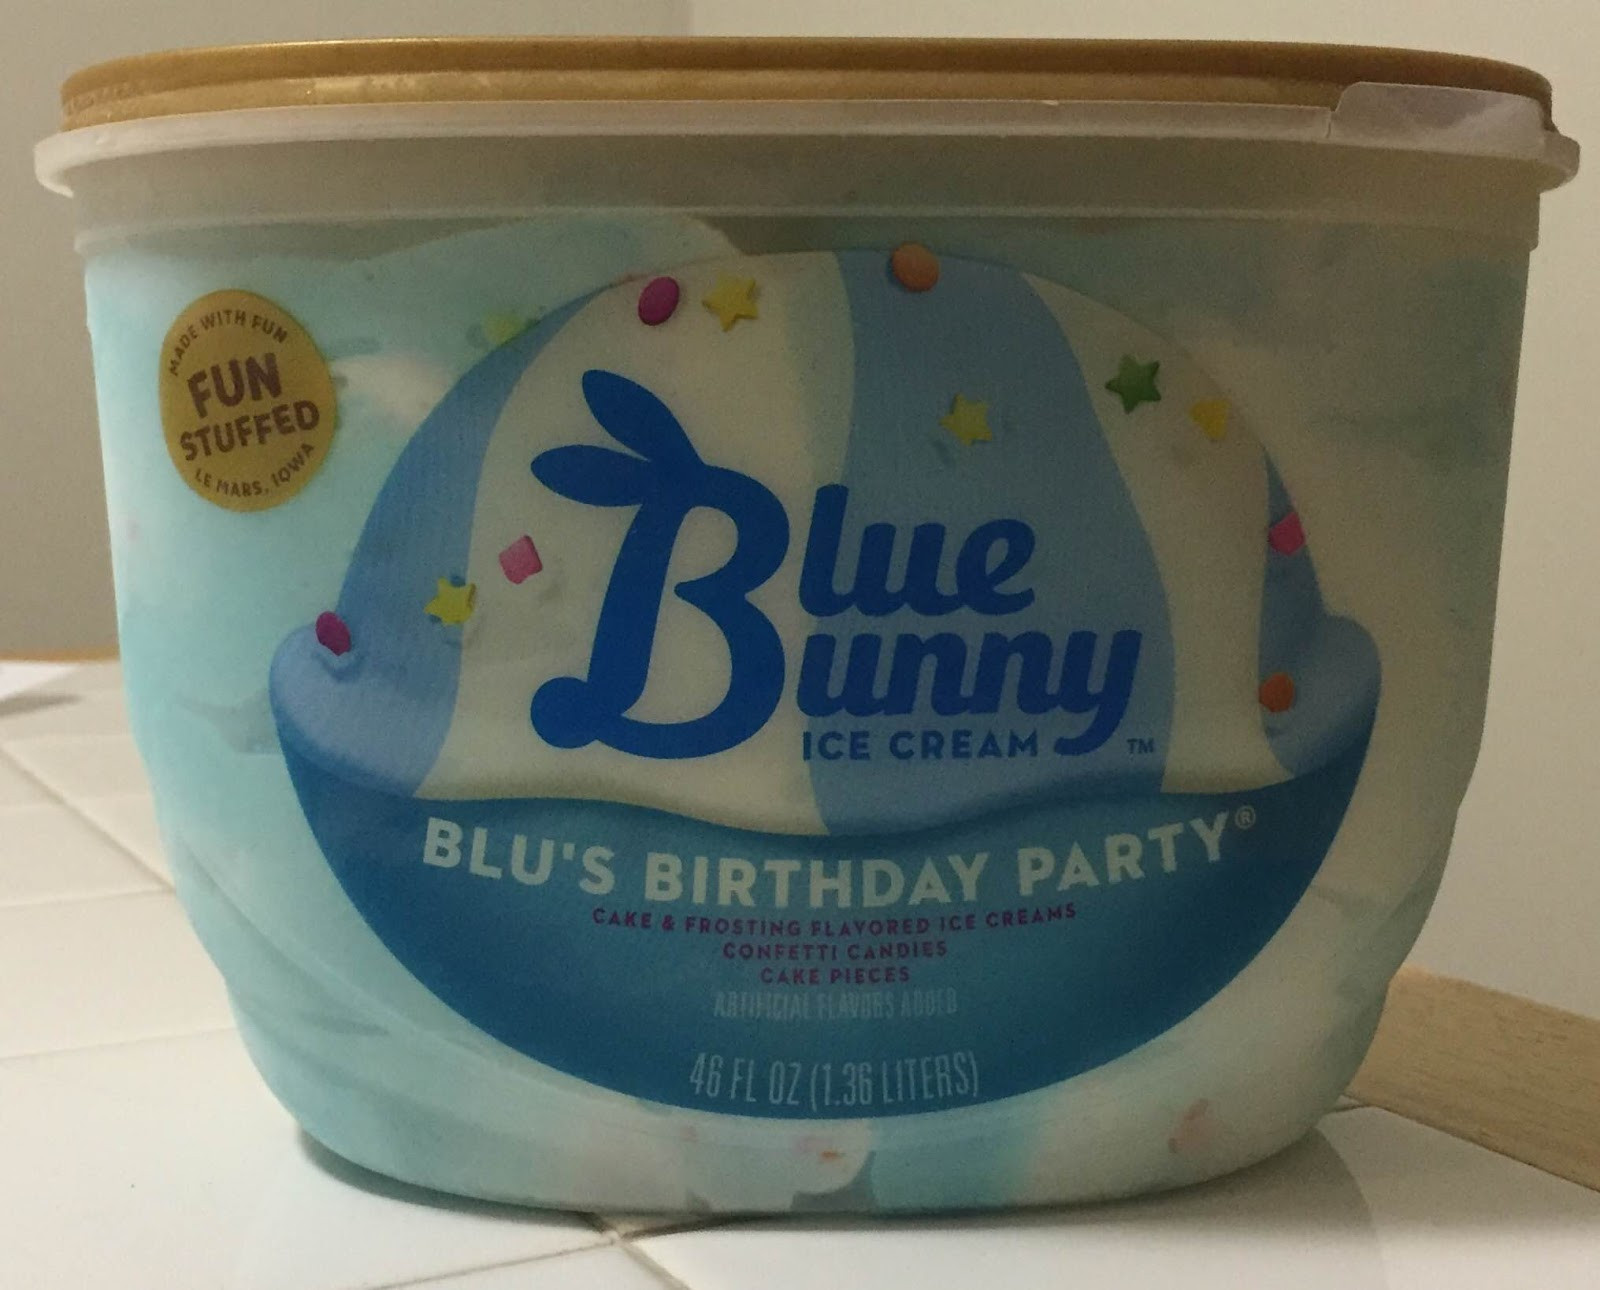 Best ideas about Blue Bunny Birthday Cake Ice Cream . Save or Pin Blue Bunny Blu s Birthday Party Now.